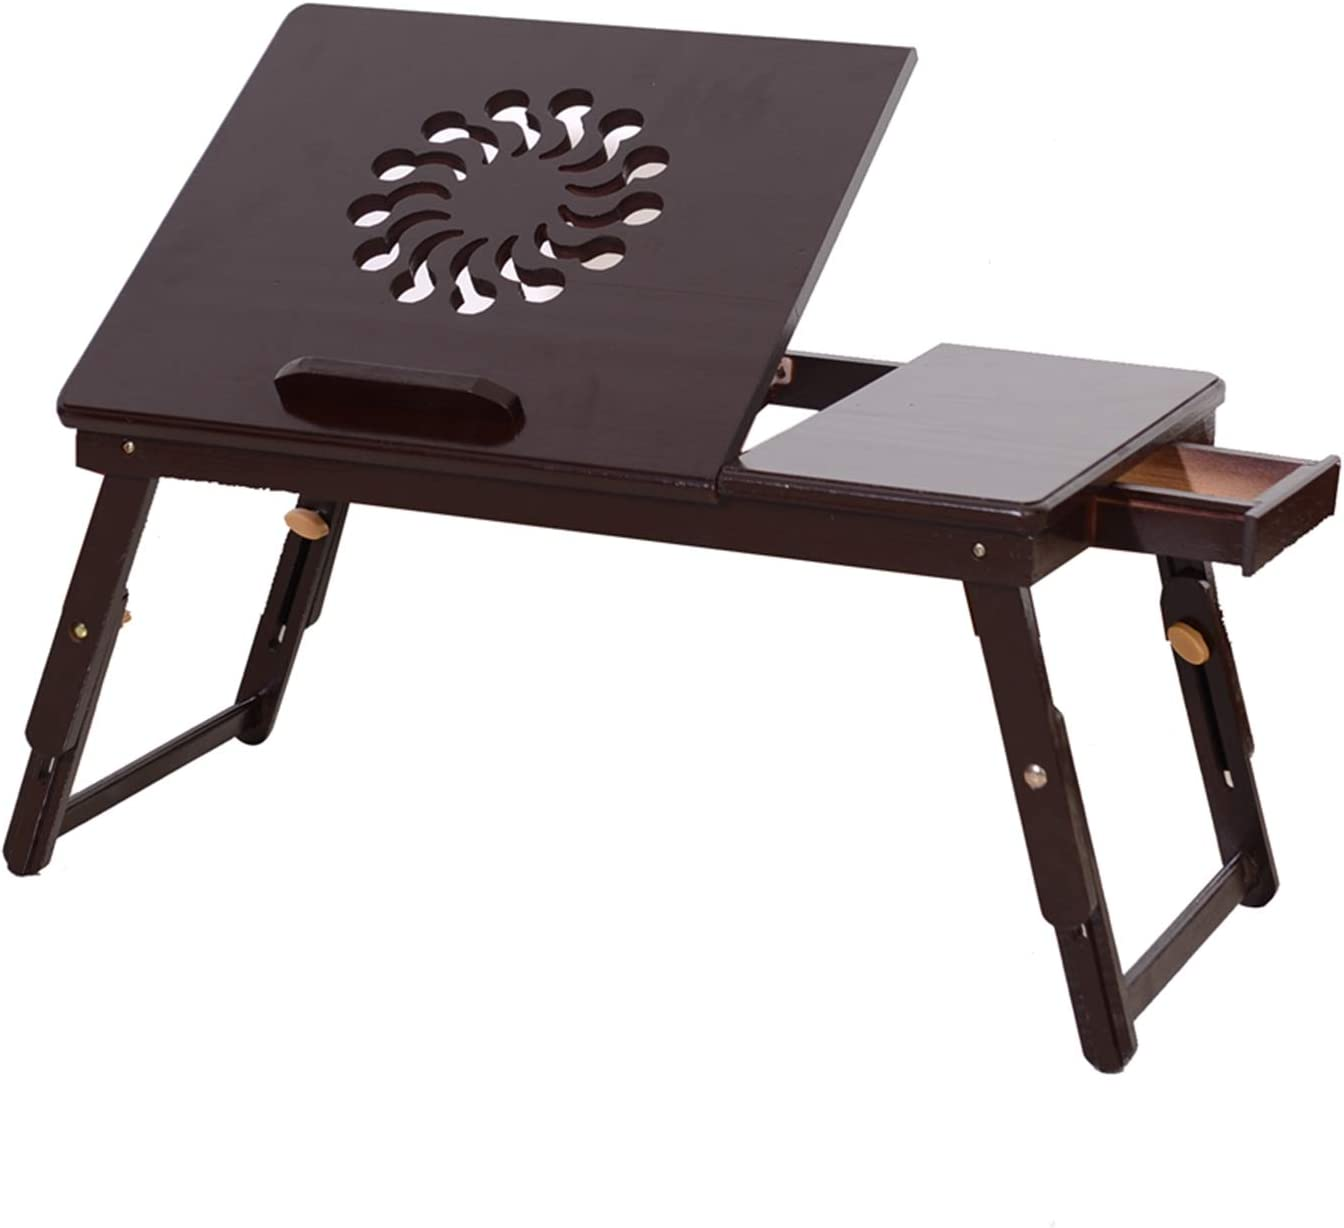 Bamboo Bed Desk Adjustable Small Laptop Tray Sale Fees free!! item Lap